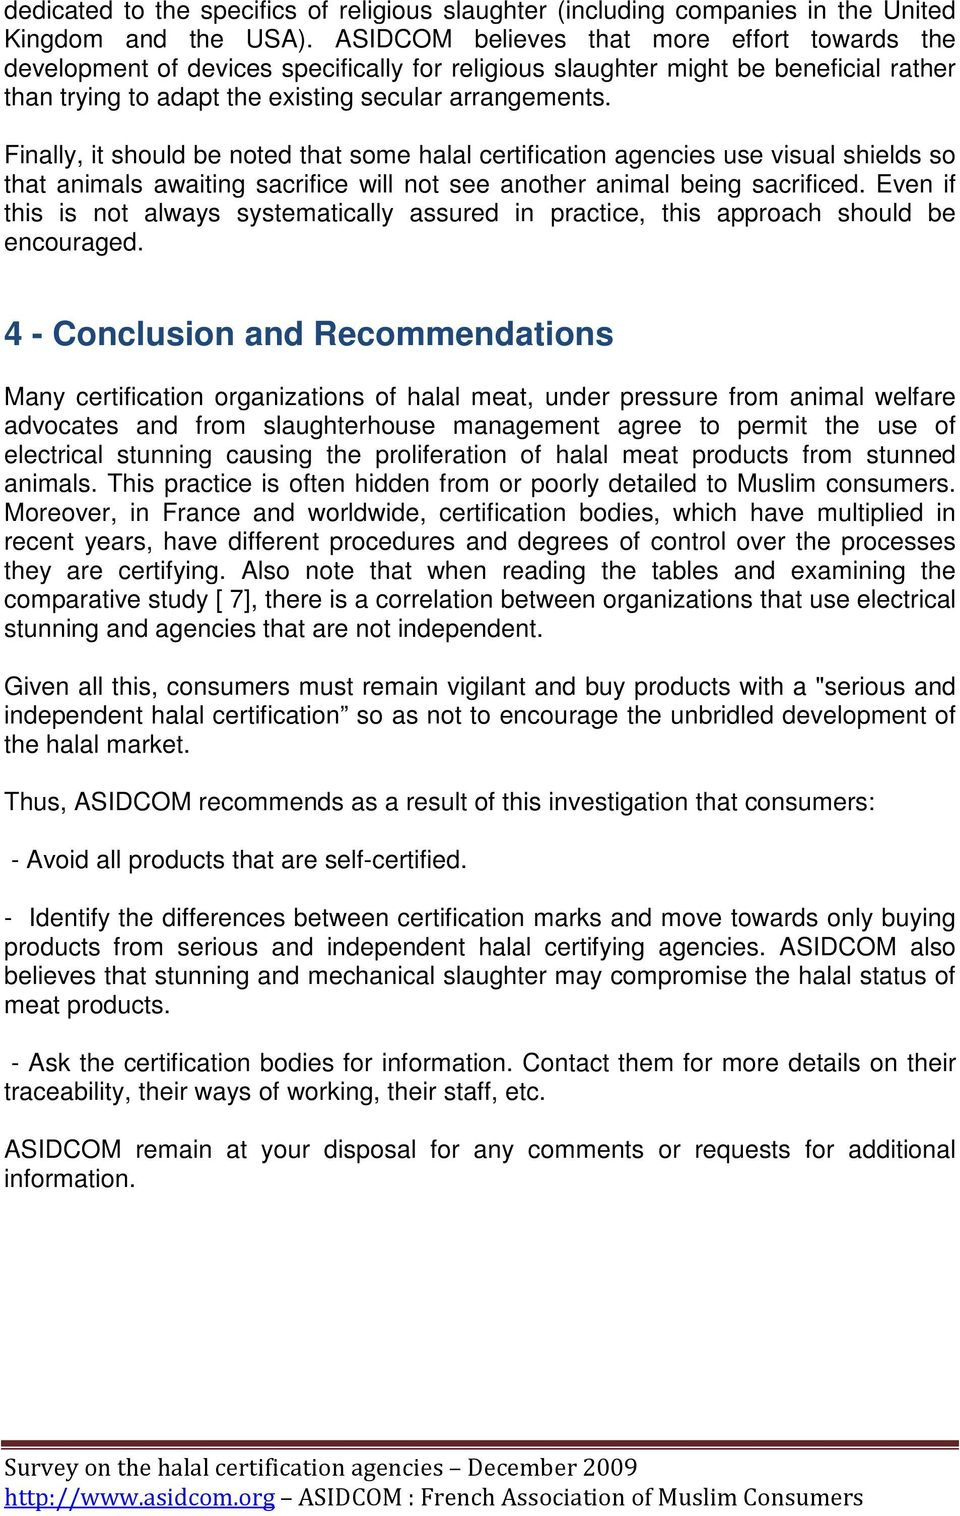 Finally, it should be noted that some halal certification agencies use visual shields so that animals awaiting sacrifice will not see another animal being sacrificed.